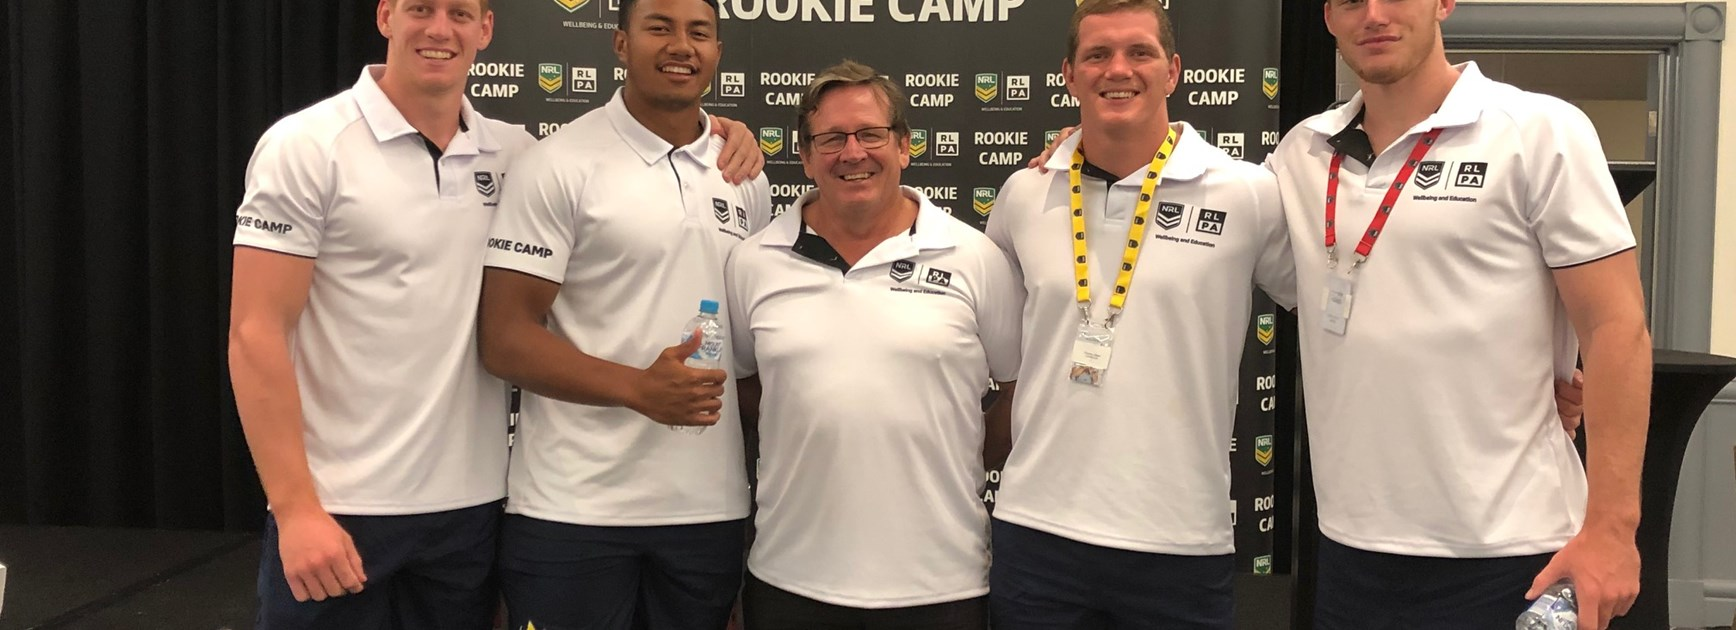 Timely lessons learned at 2018 NRL Rookie Camp